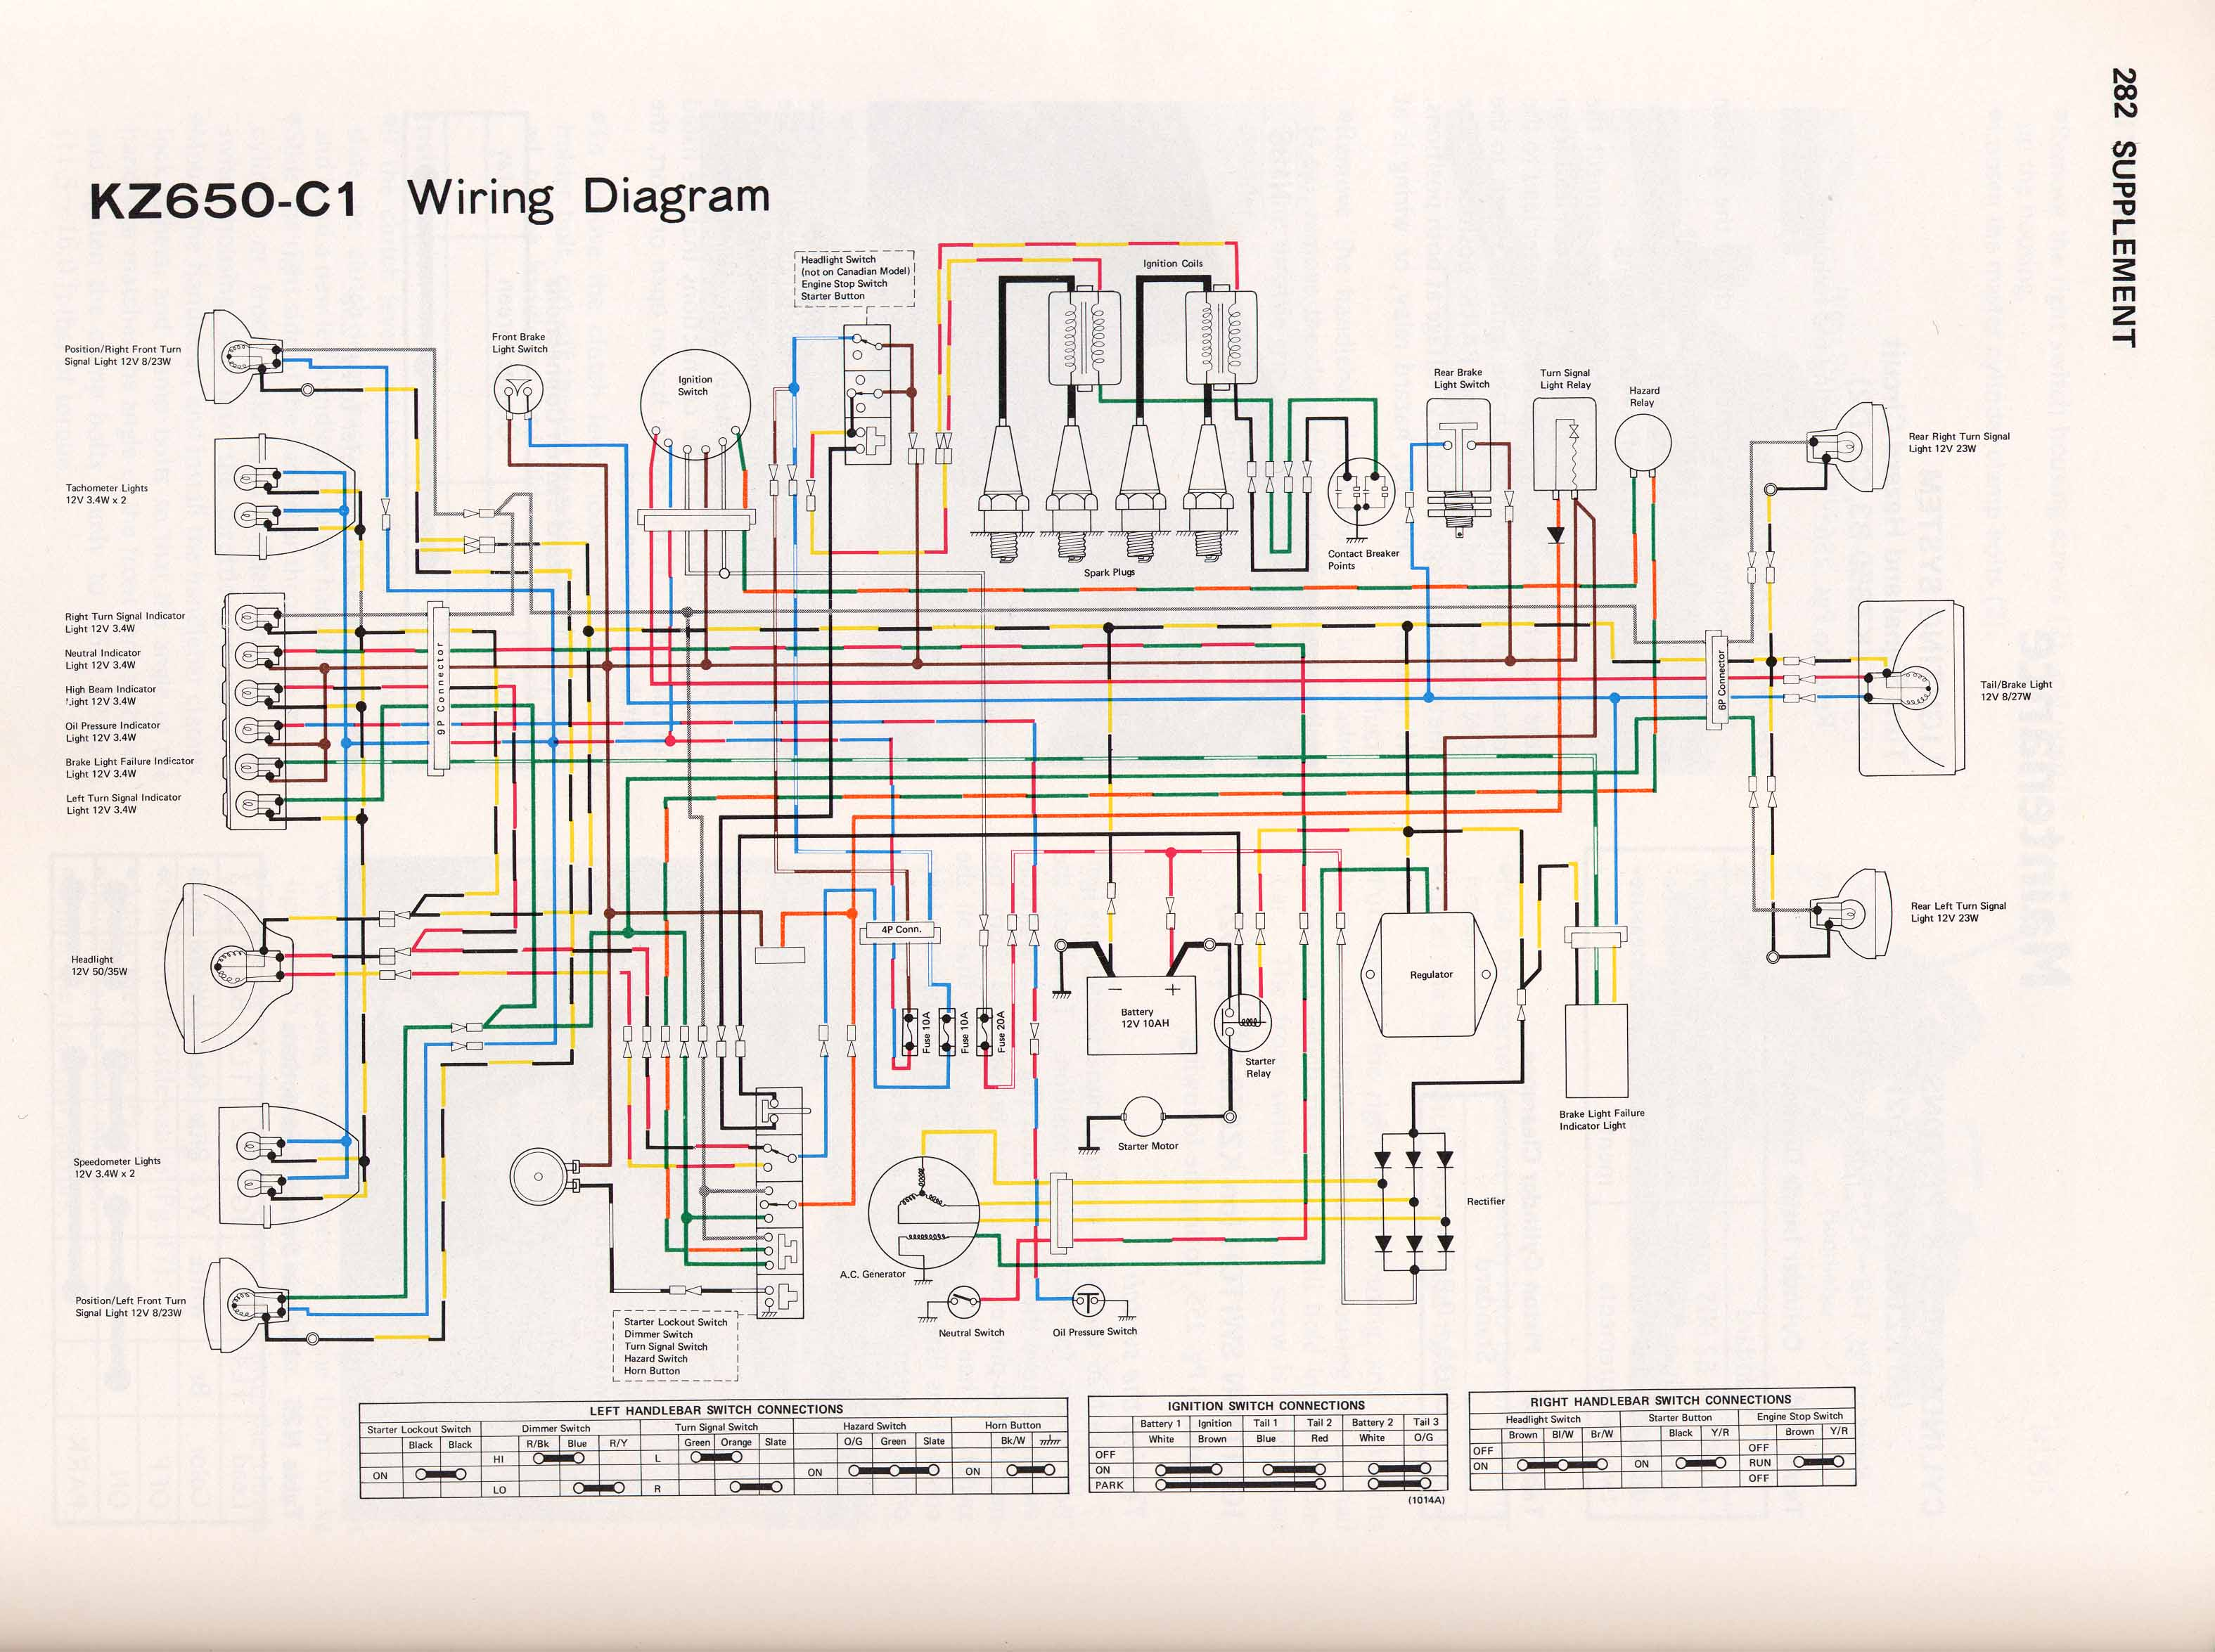 kz650 info wiring diagrams rh diagrams kz650 info 2012 Chevy Truck Wiring Diagram Motorcycle Wiring Harness Diagram